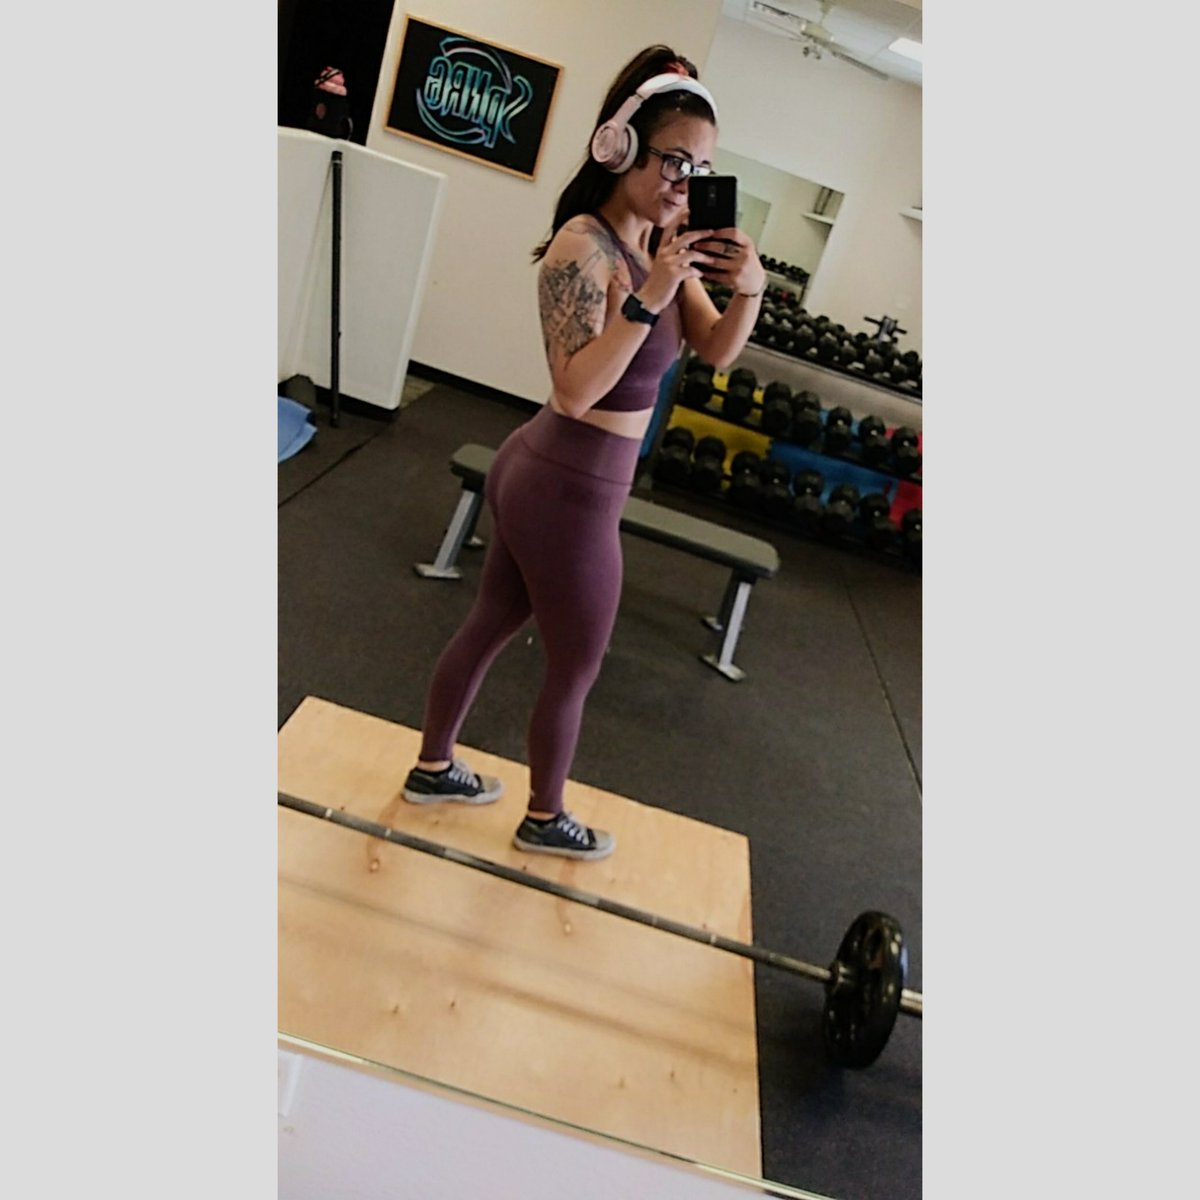 Happy #humpday! Killed my workout thanks to dry scooping some pre bc ya girl was tired lol.  #fitchick #fitness #gymshark #girlswholift #girlswithtattoos #inkedgirls pic.twitter.com/CkZitEhx3O